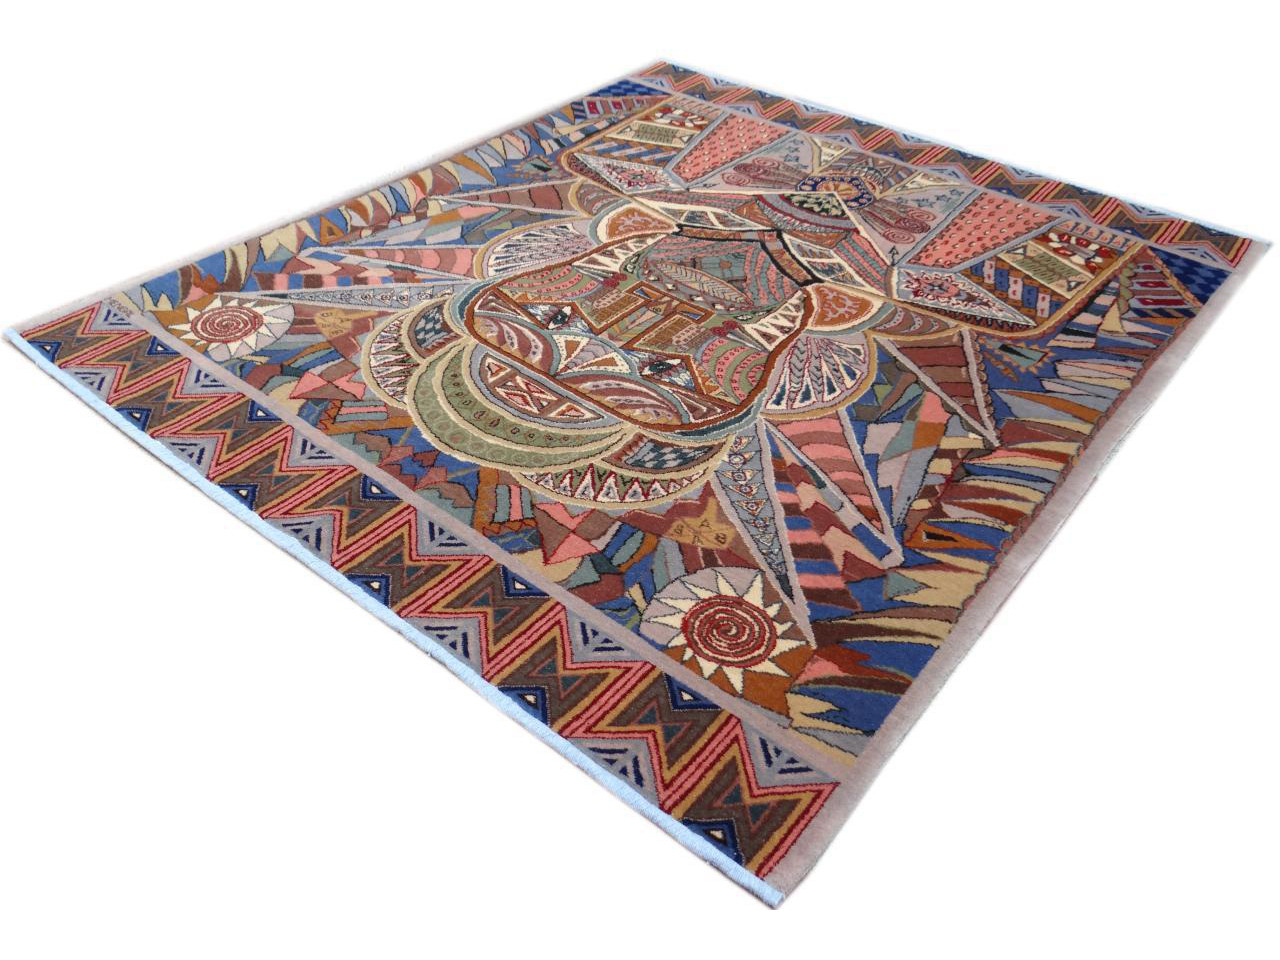 39 new york 39 of belgian creation tapis luxury n 2171 177x150cm - Tapis contemporain belgique ...